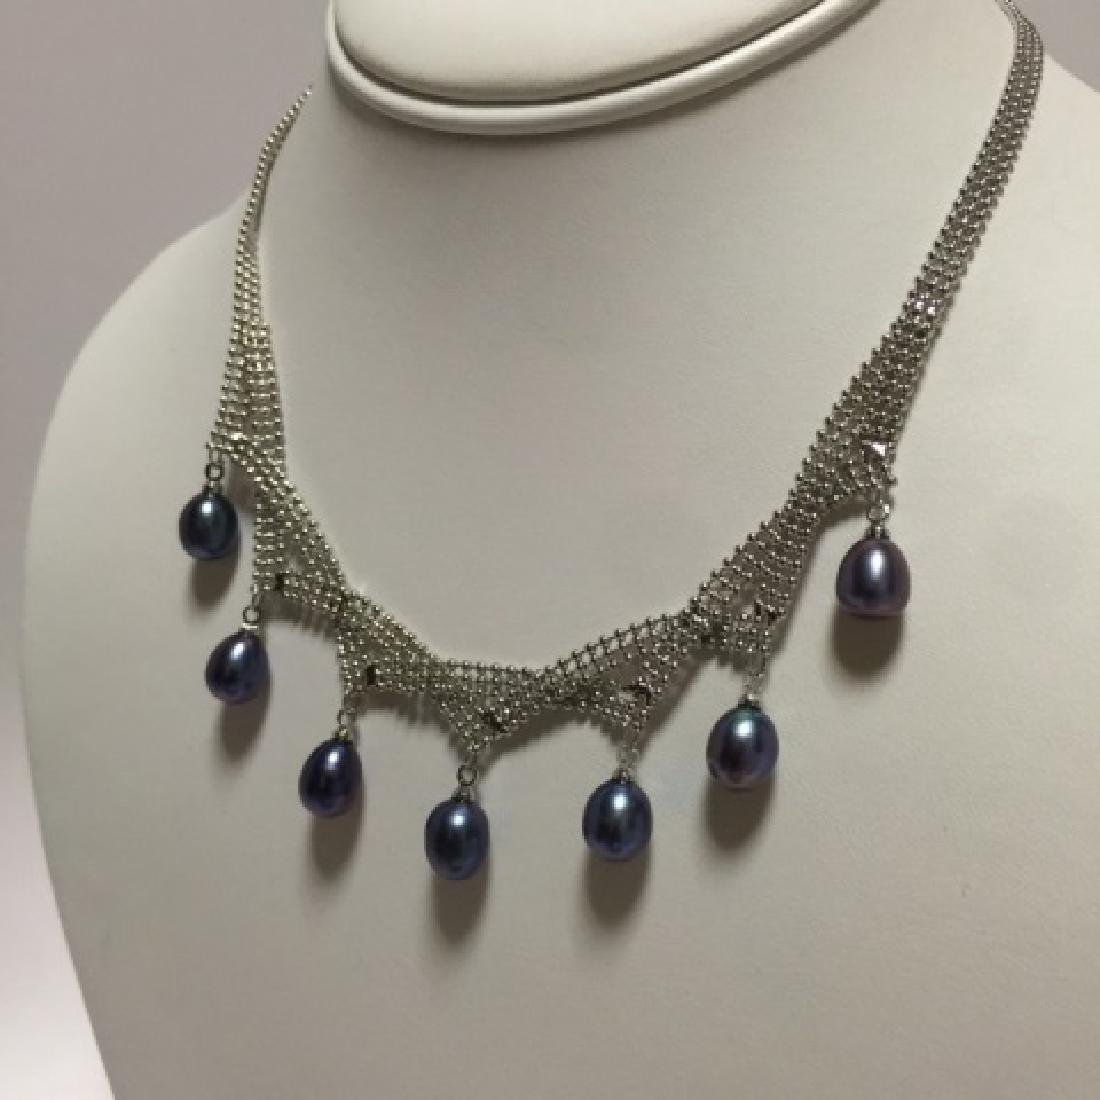 Tahitian Baroque Style Pearl Pendant Mesh Necklace - 3